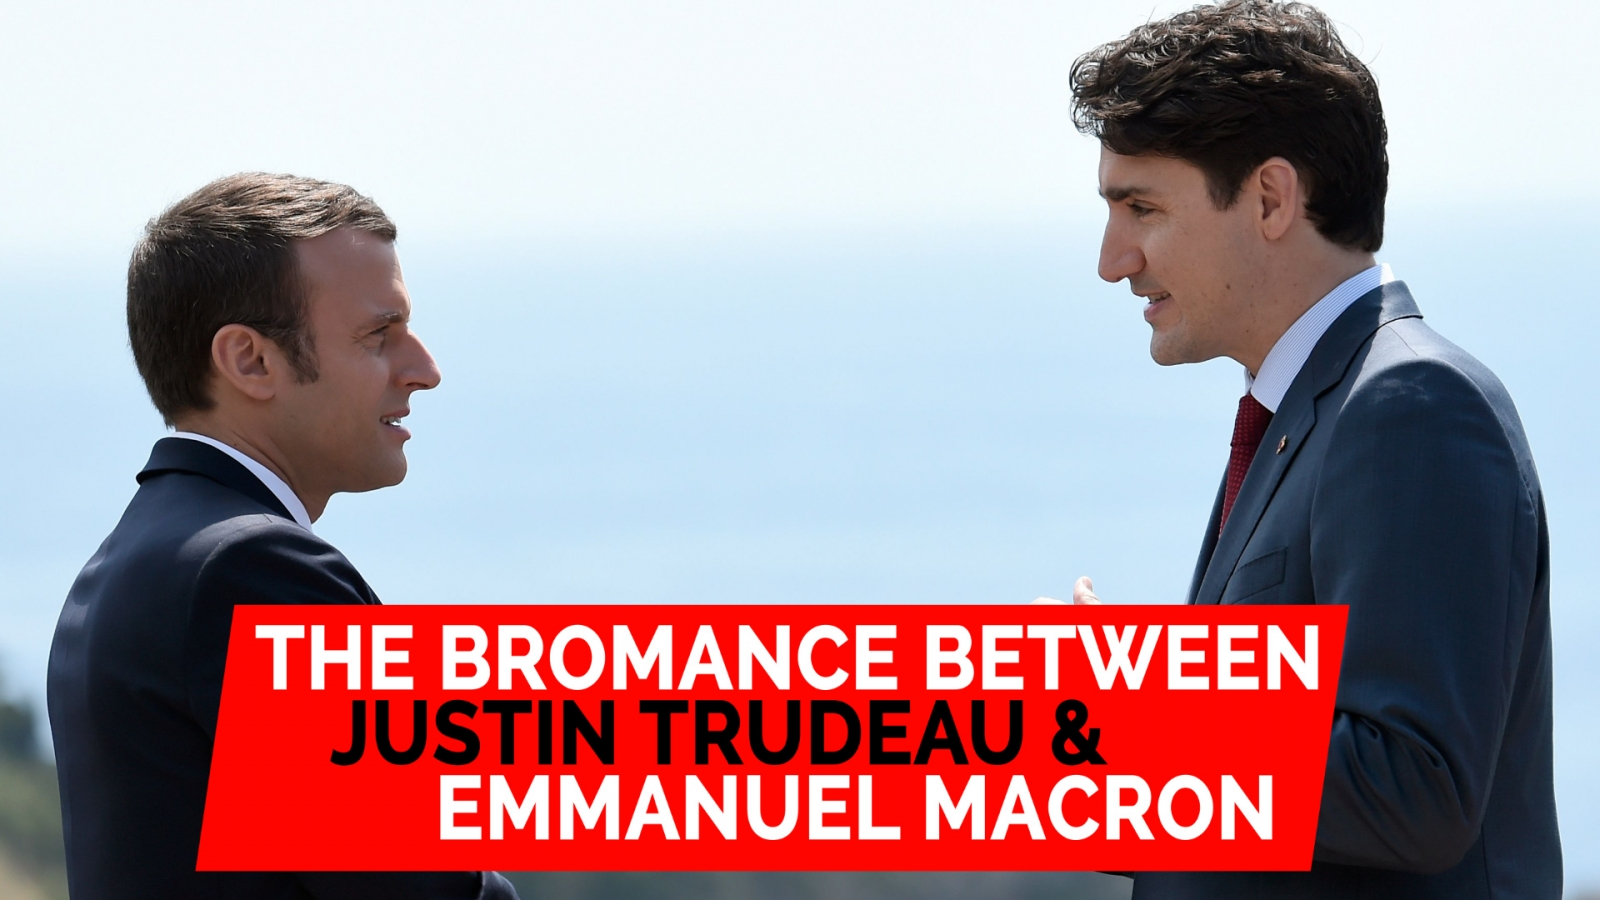 Blooming bromance between Justin Trudeau and Emmanuel Macron at G7 summit